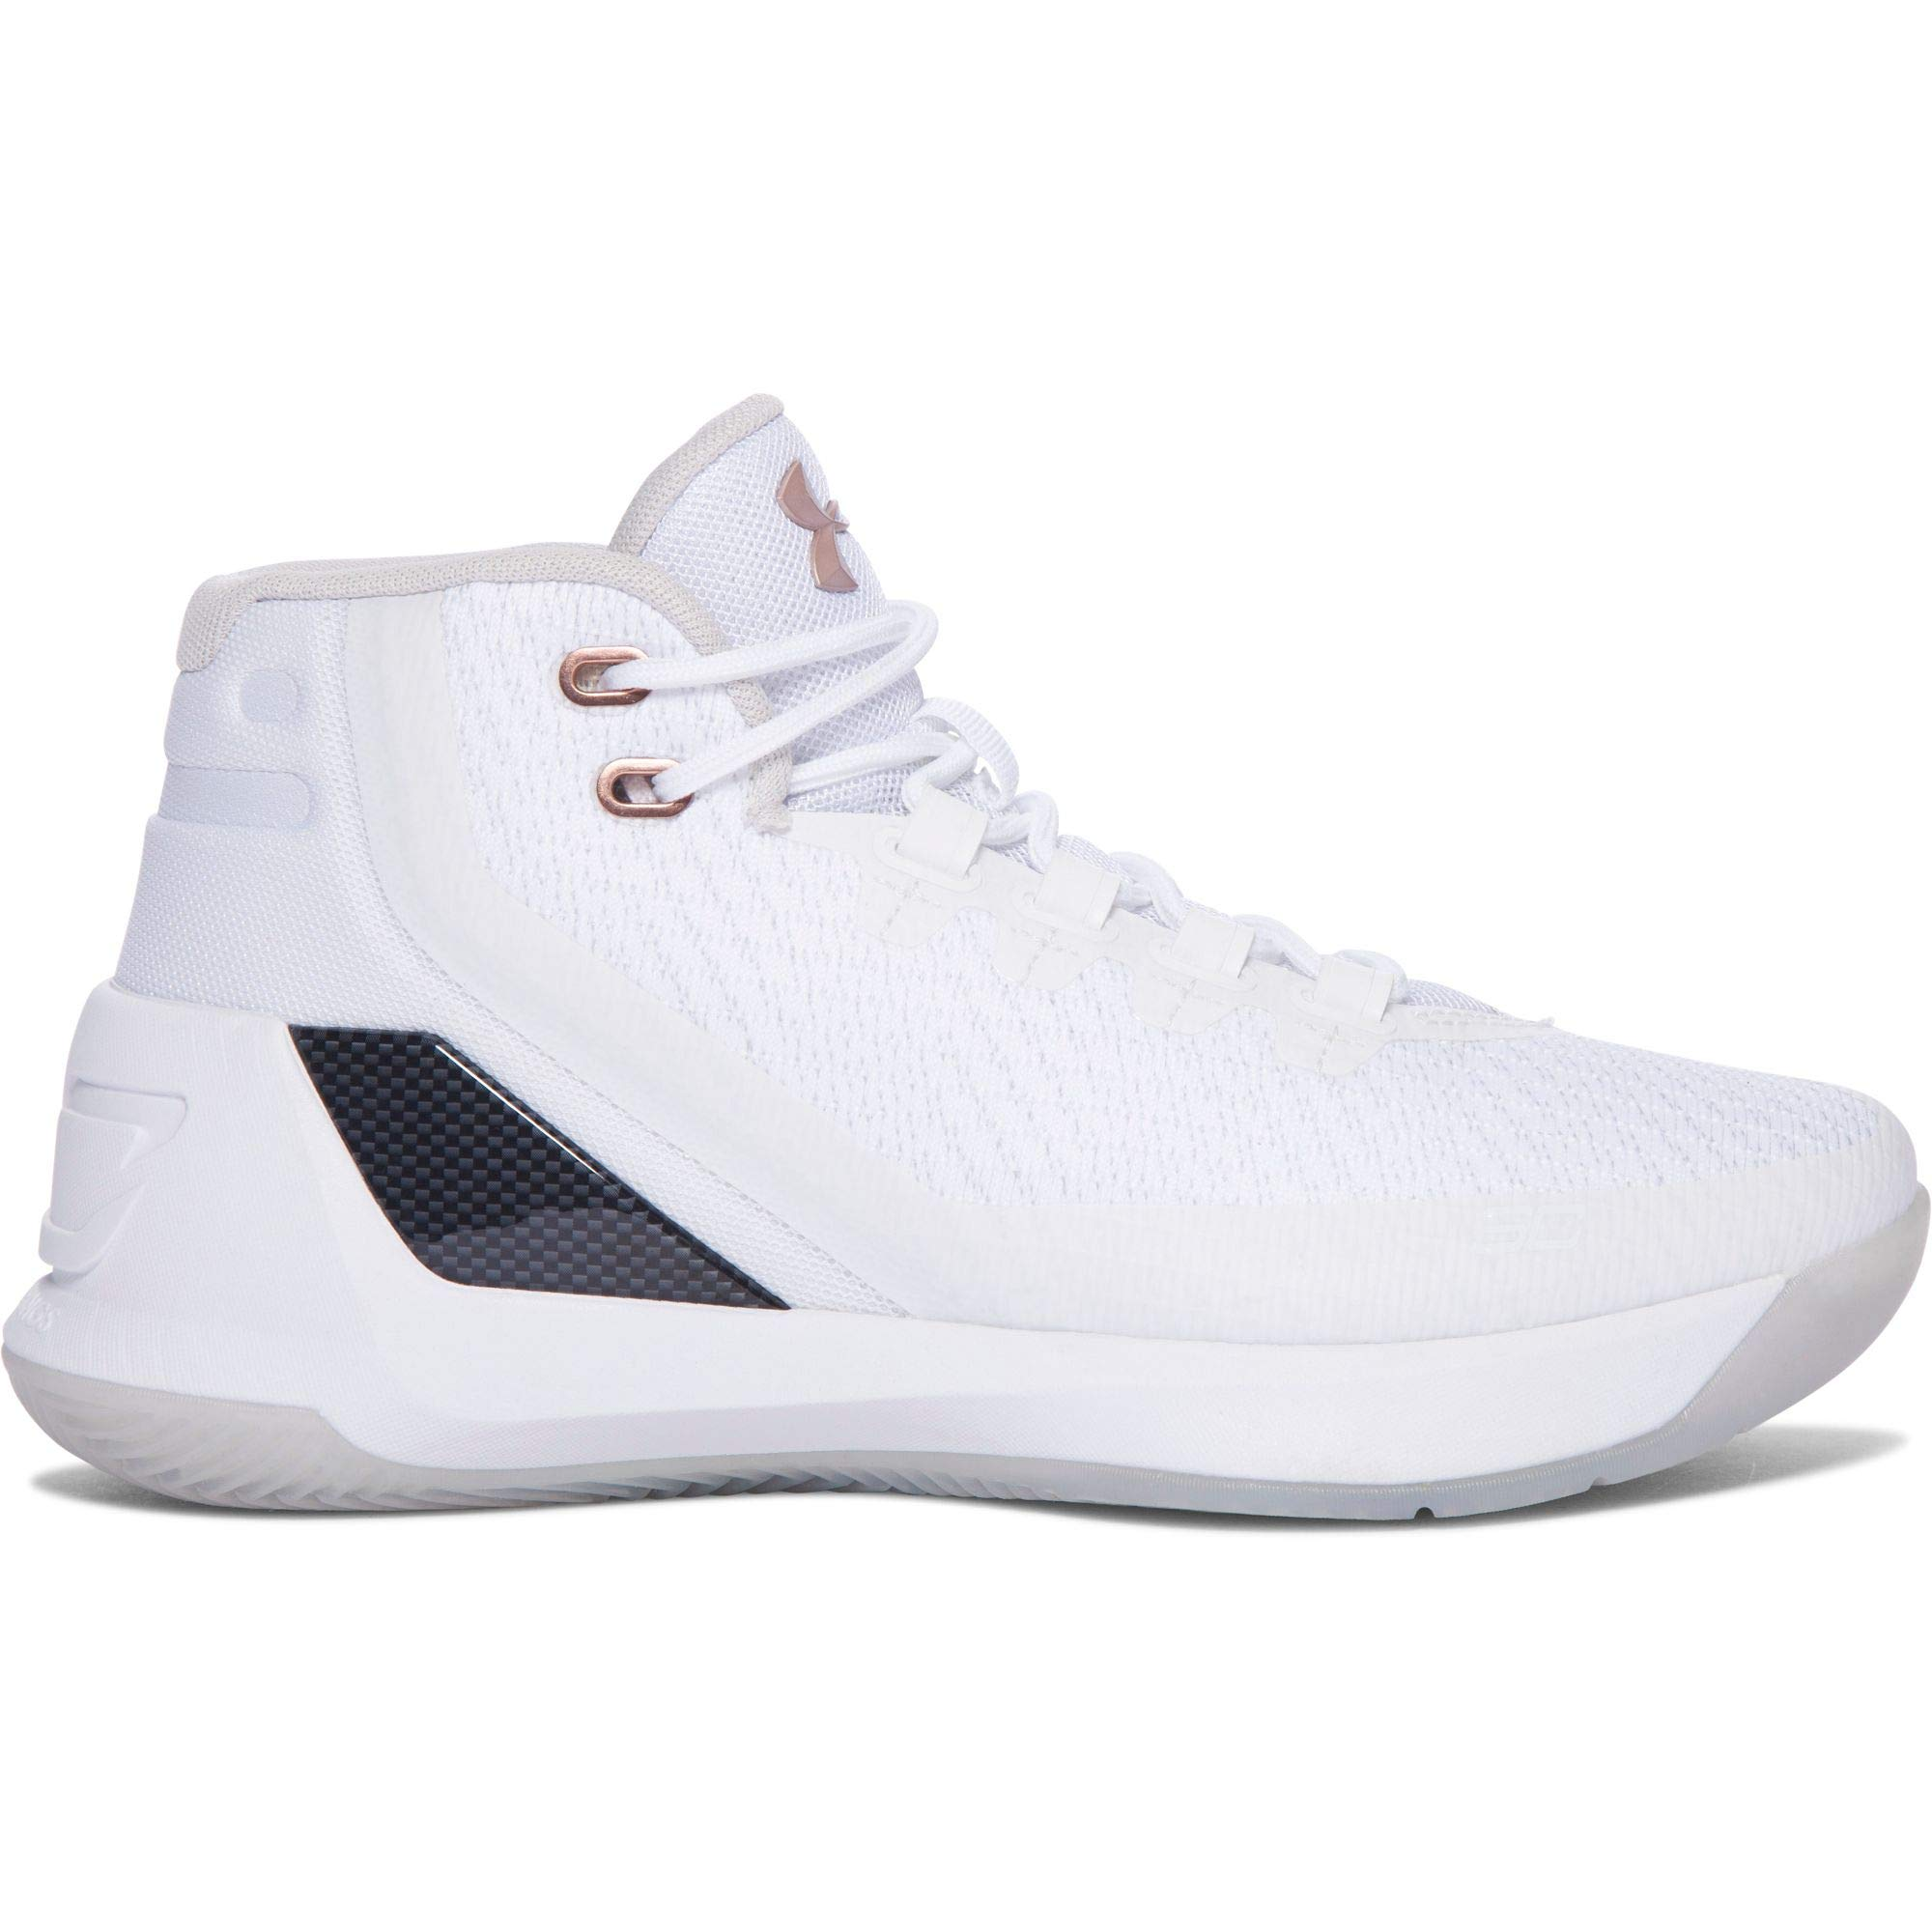 7164cad0243 Galleon - Under Armour Boys  Grade School UA Curry 3 Basketball Shoes 5  White